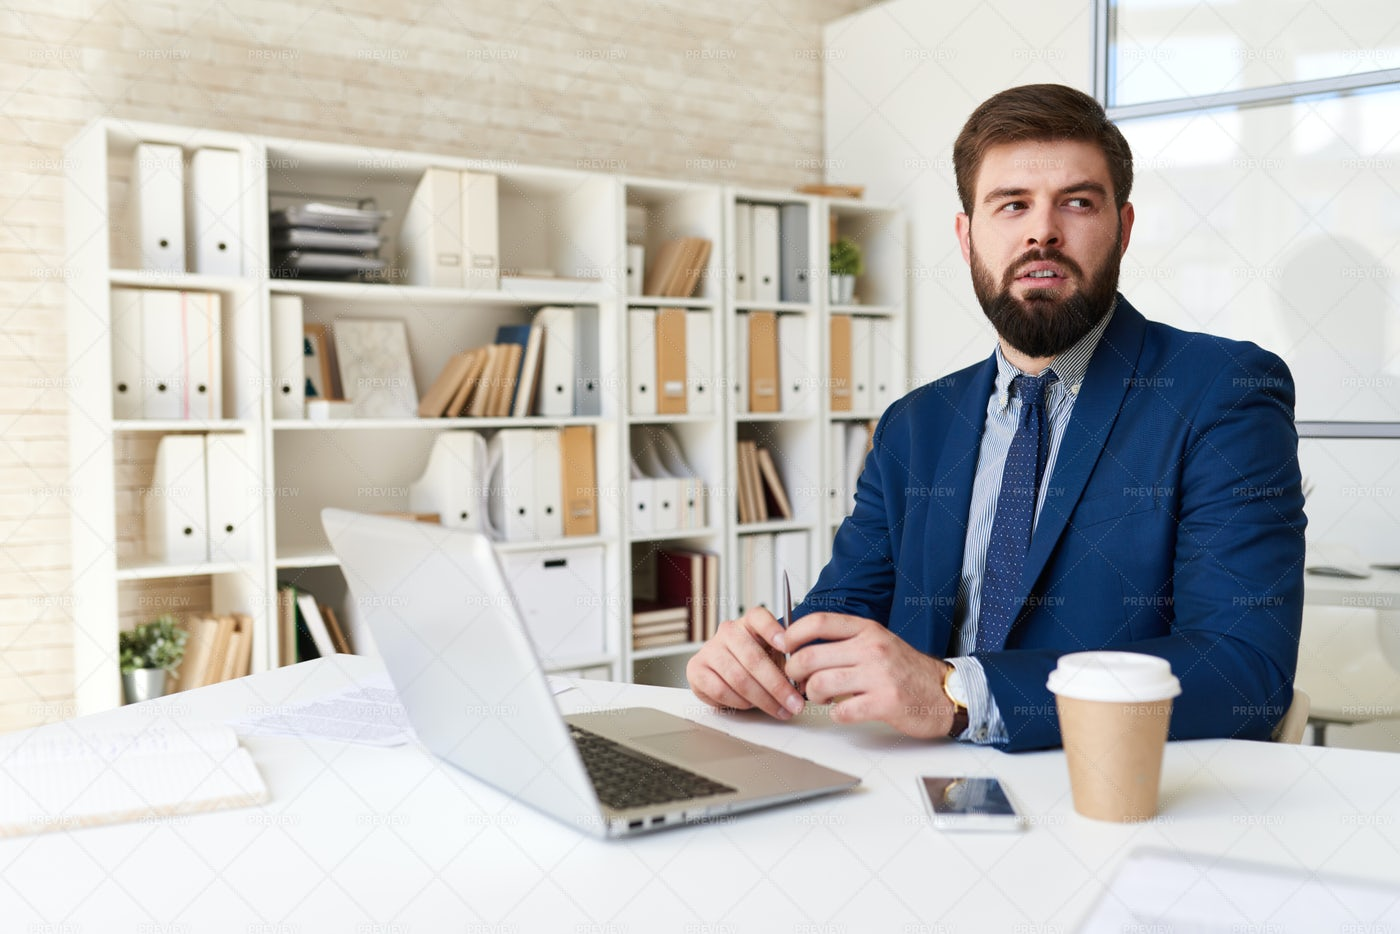 Thinking Business Expert In Office: Stock Photos